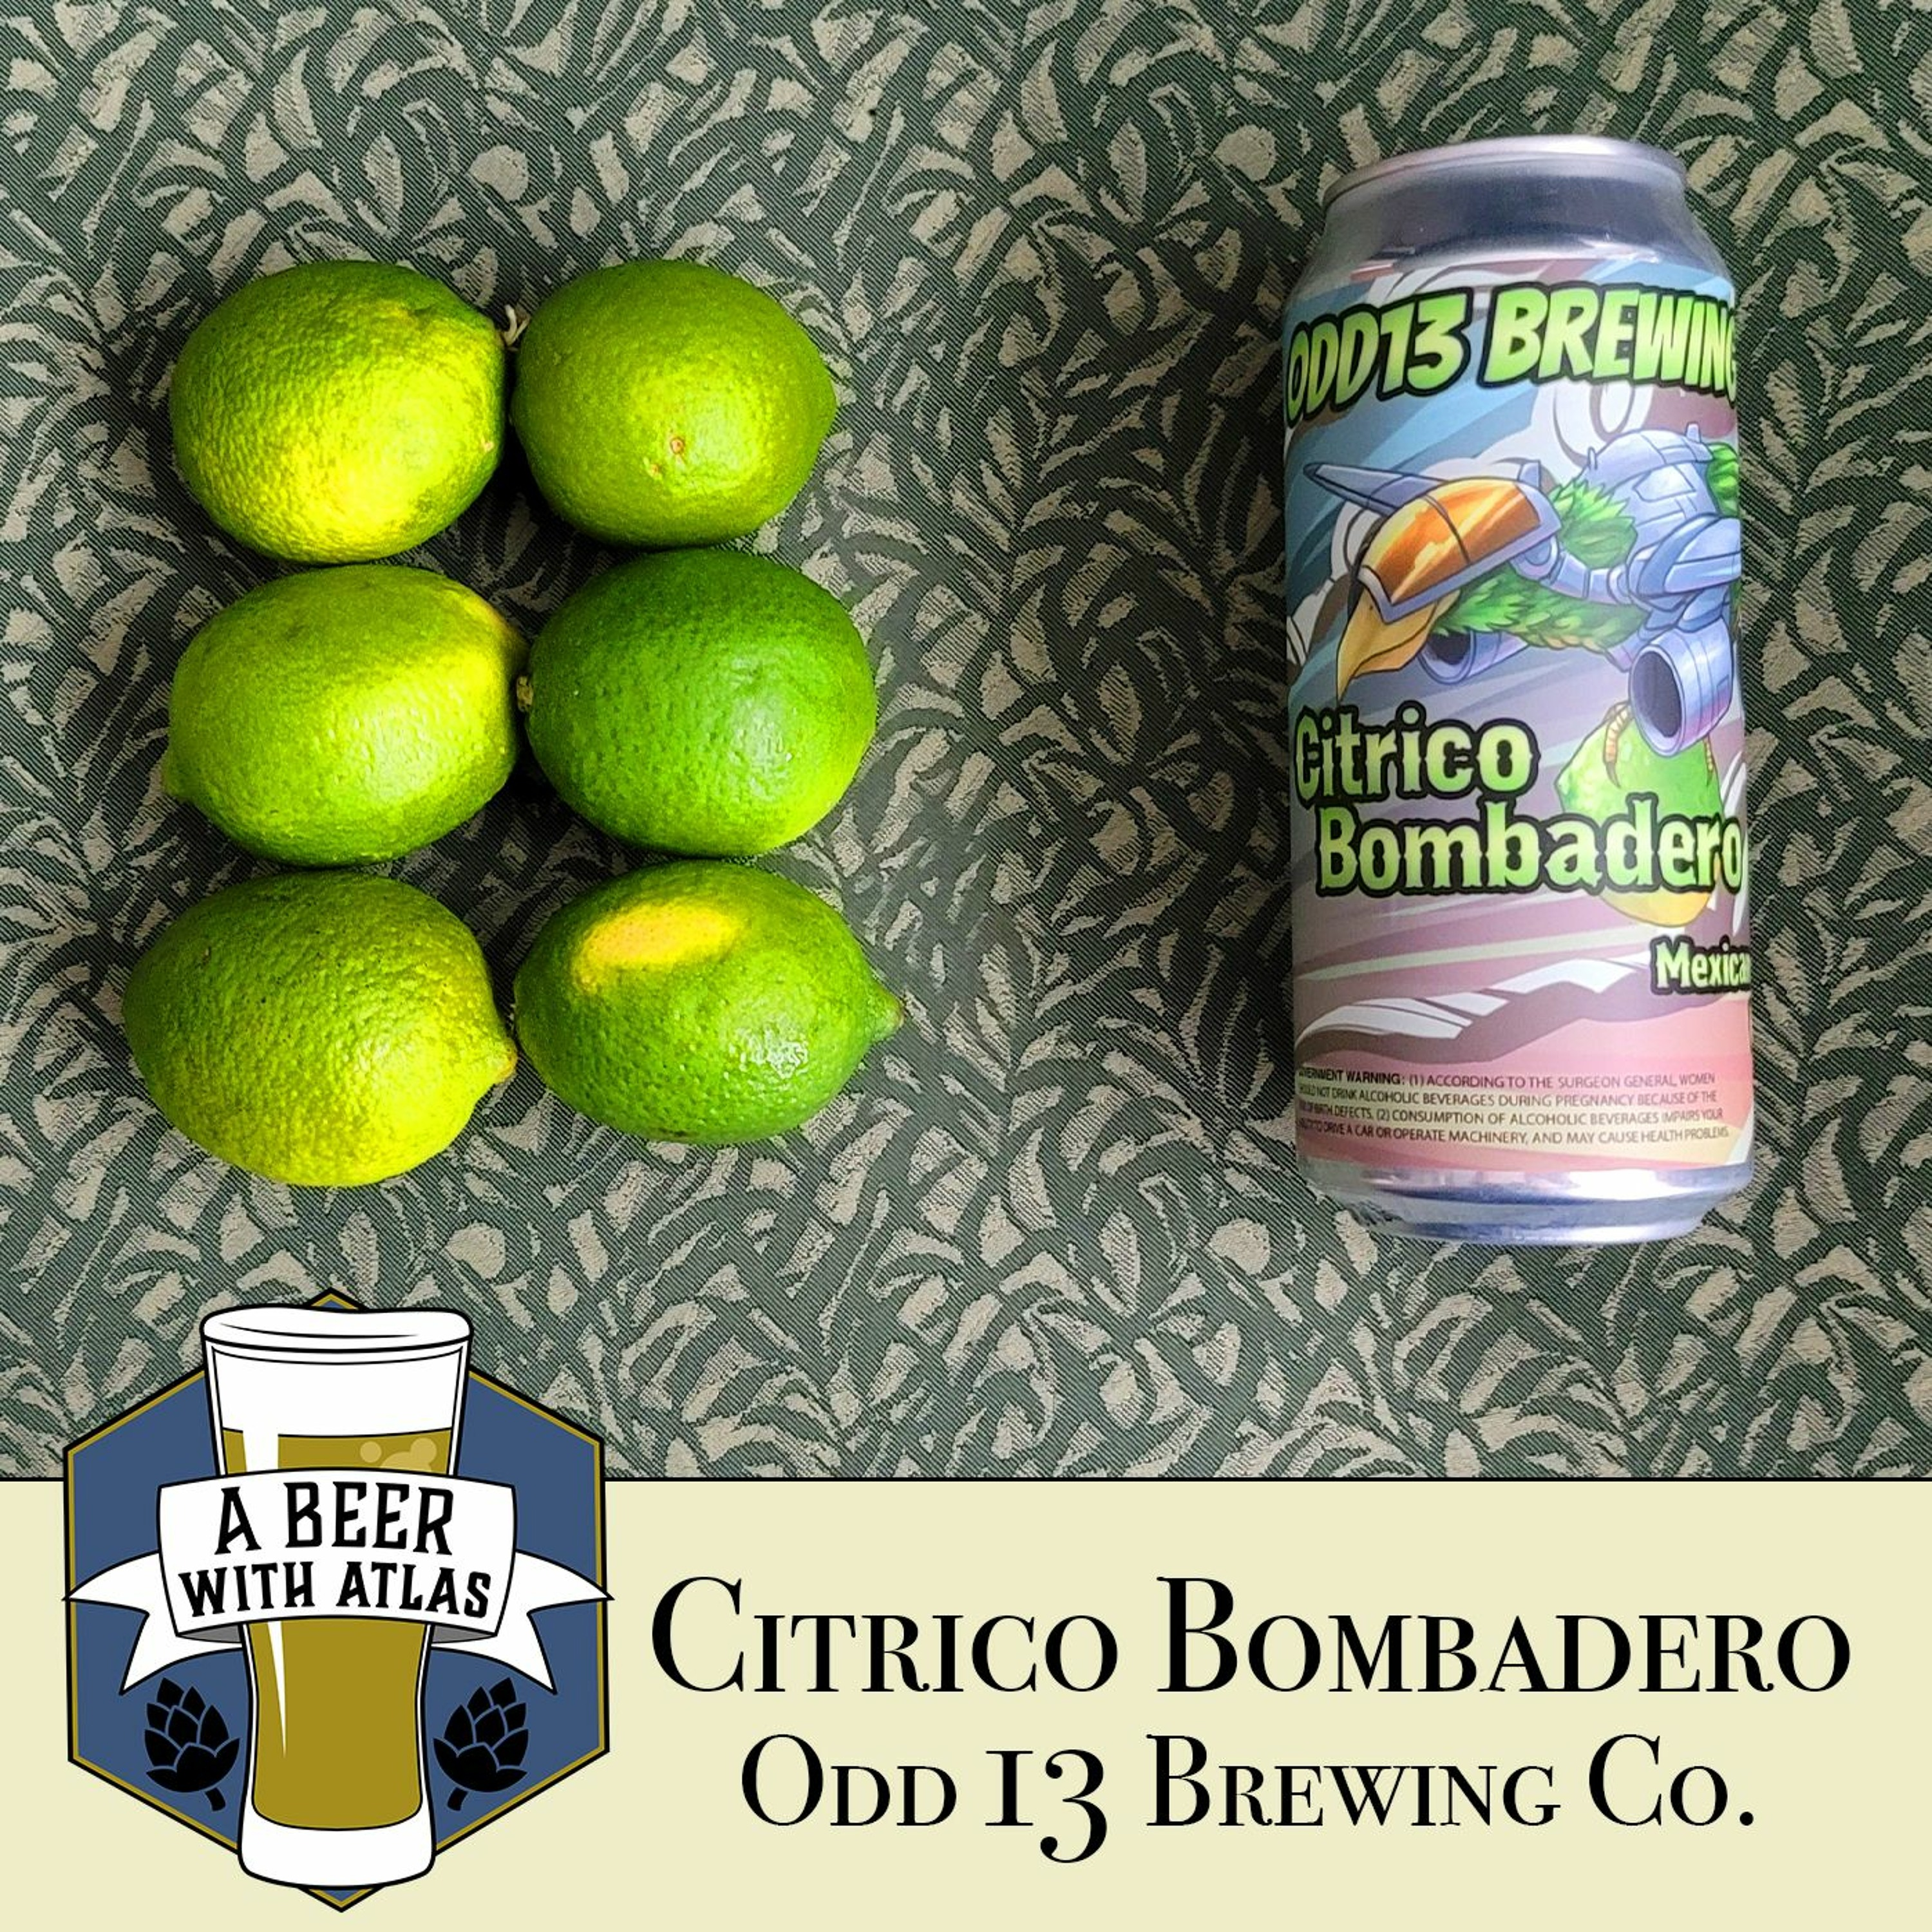 Citrico Bombadero - ODD13 Brewing Co - A Beer with Atlas 141 - travel nurse craft beer podcast